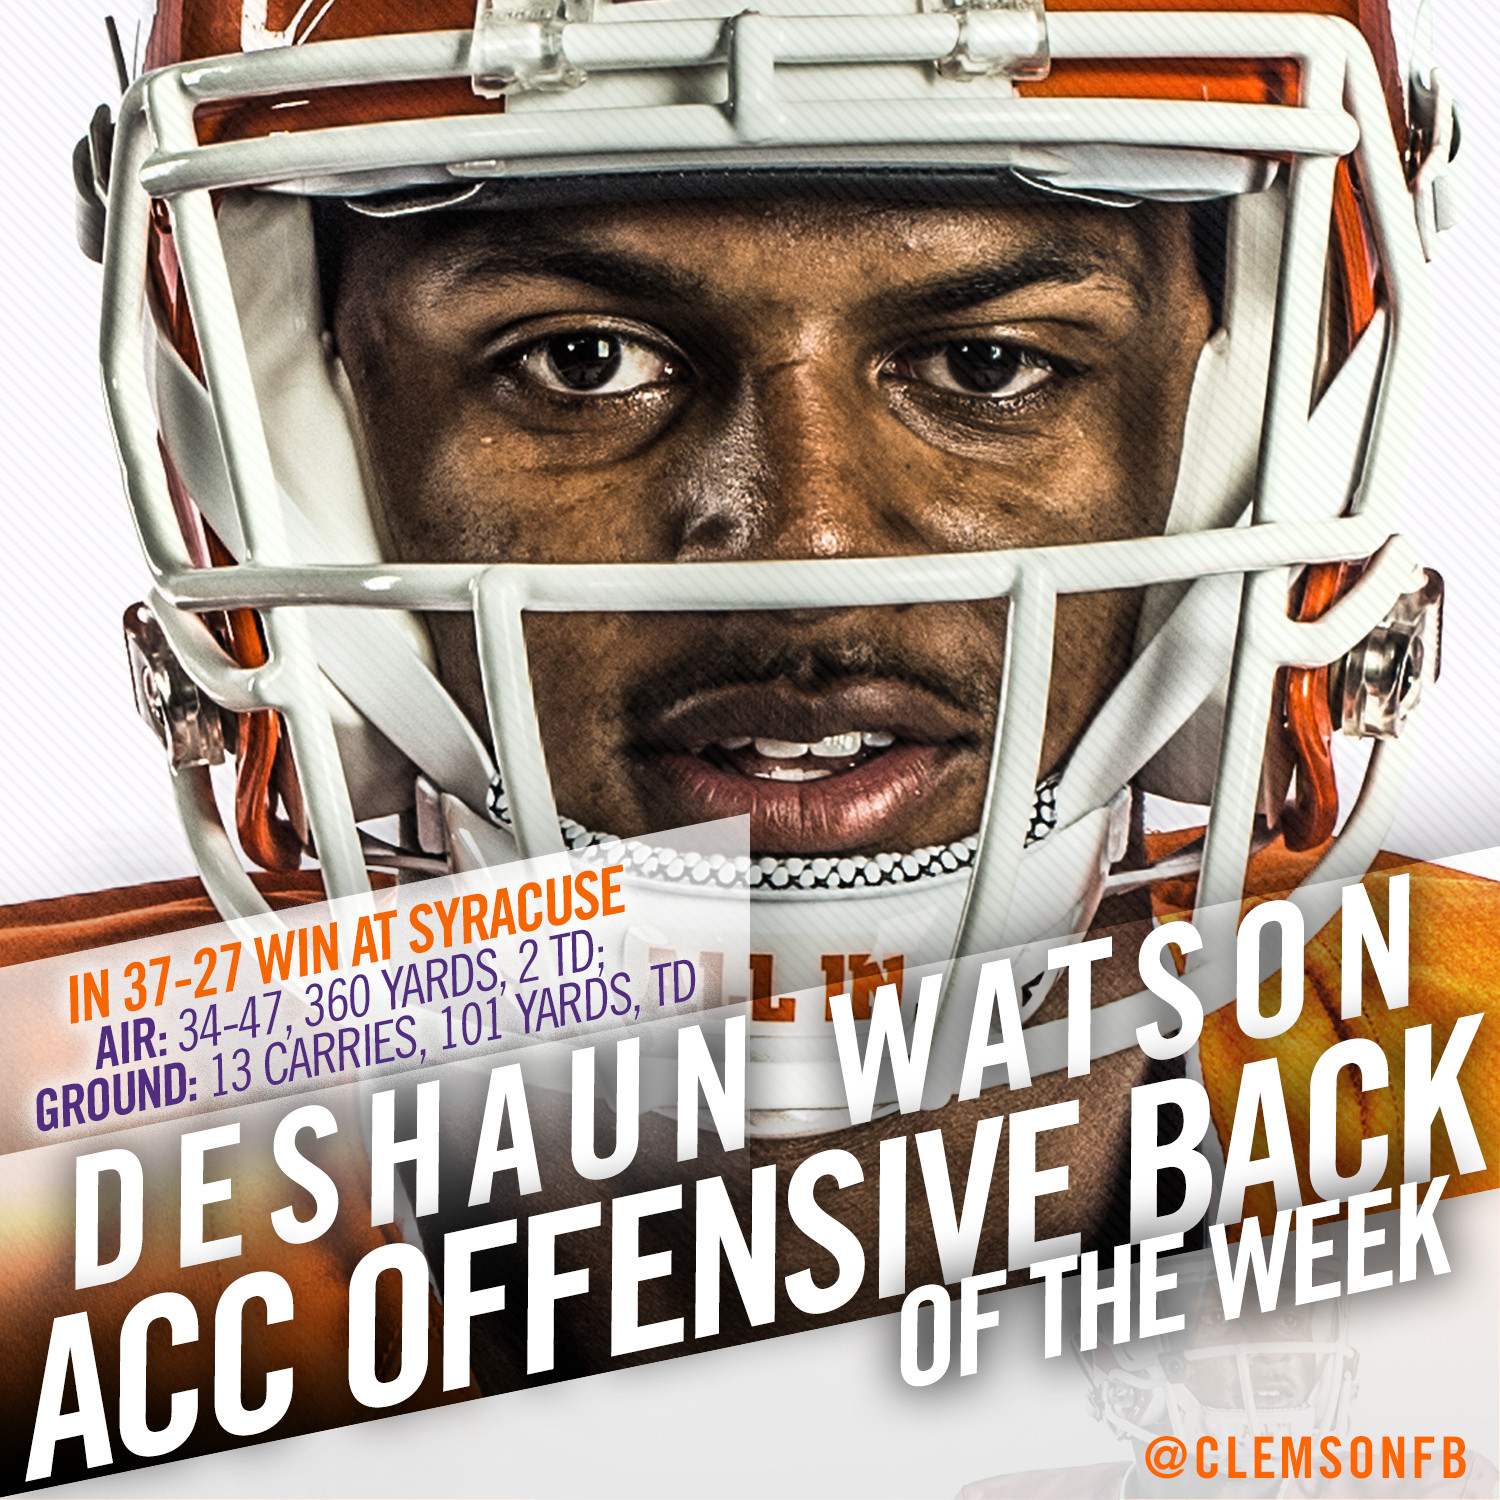 Watson ACC Offensive Back of the Week